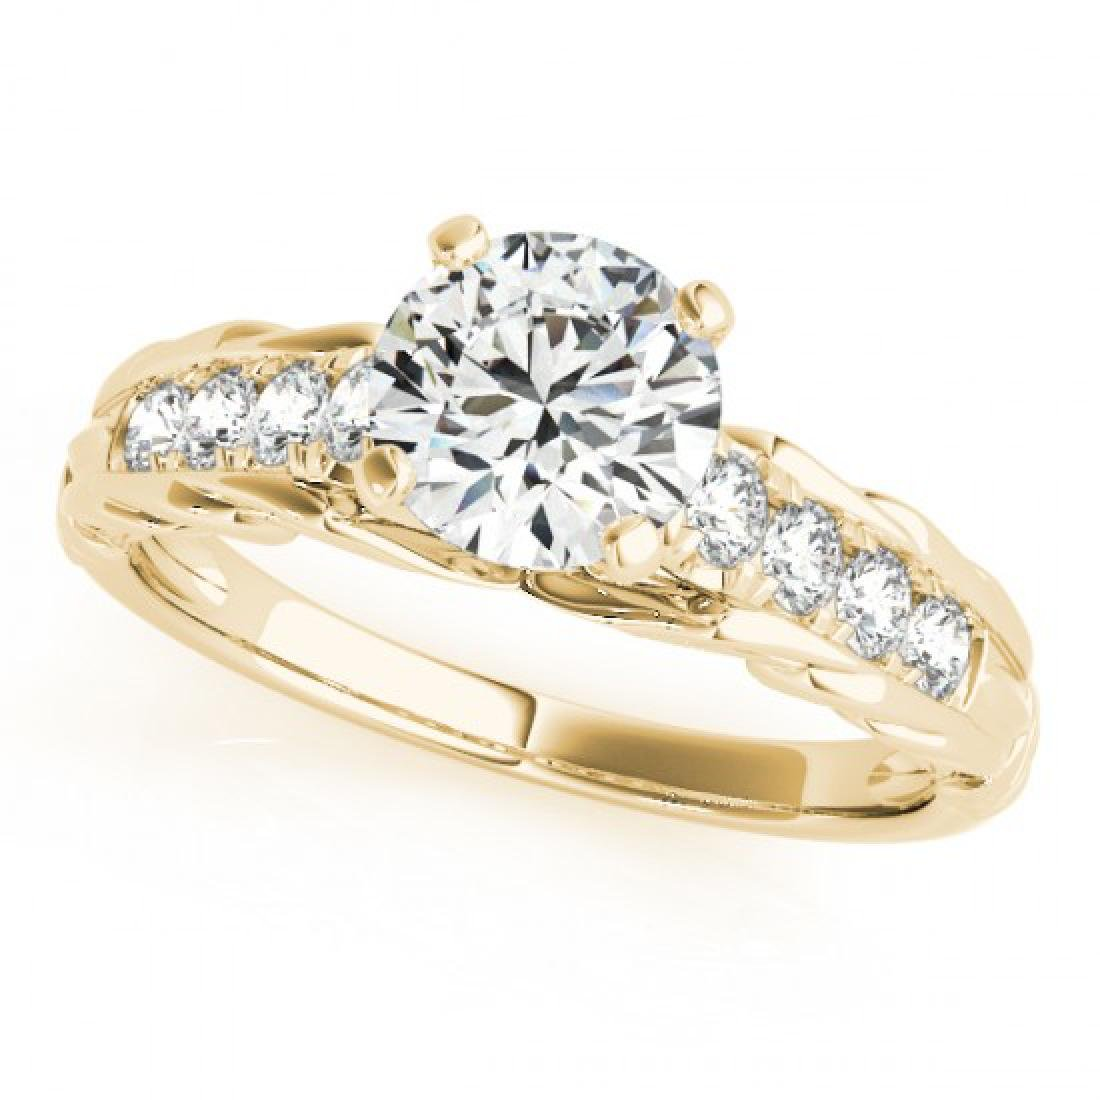 1.2 CTW Certified VS/SI Diamond Solitaire Ring 18K